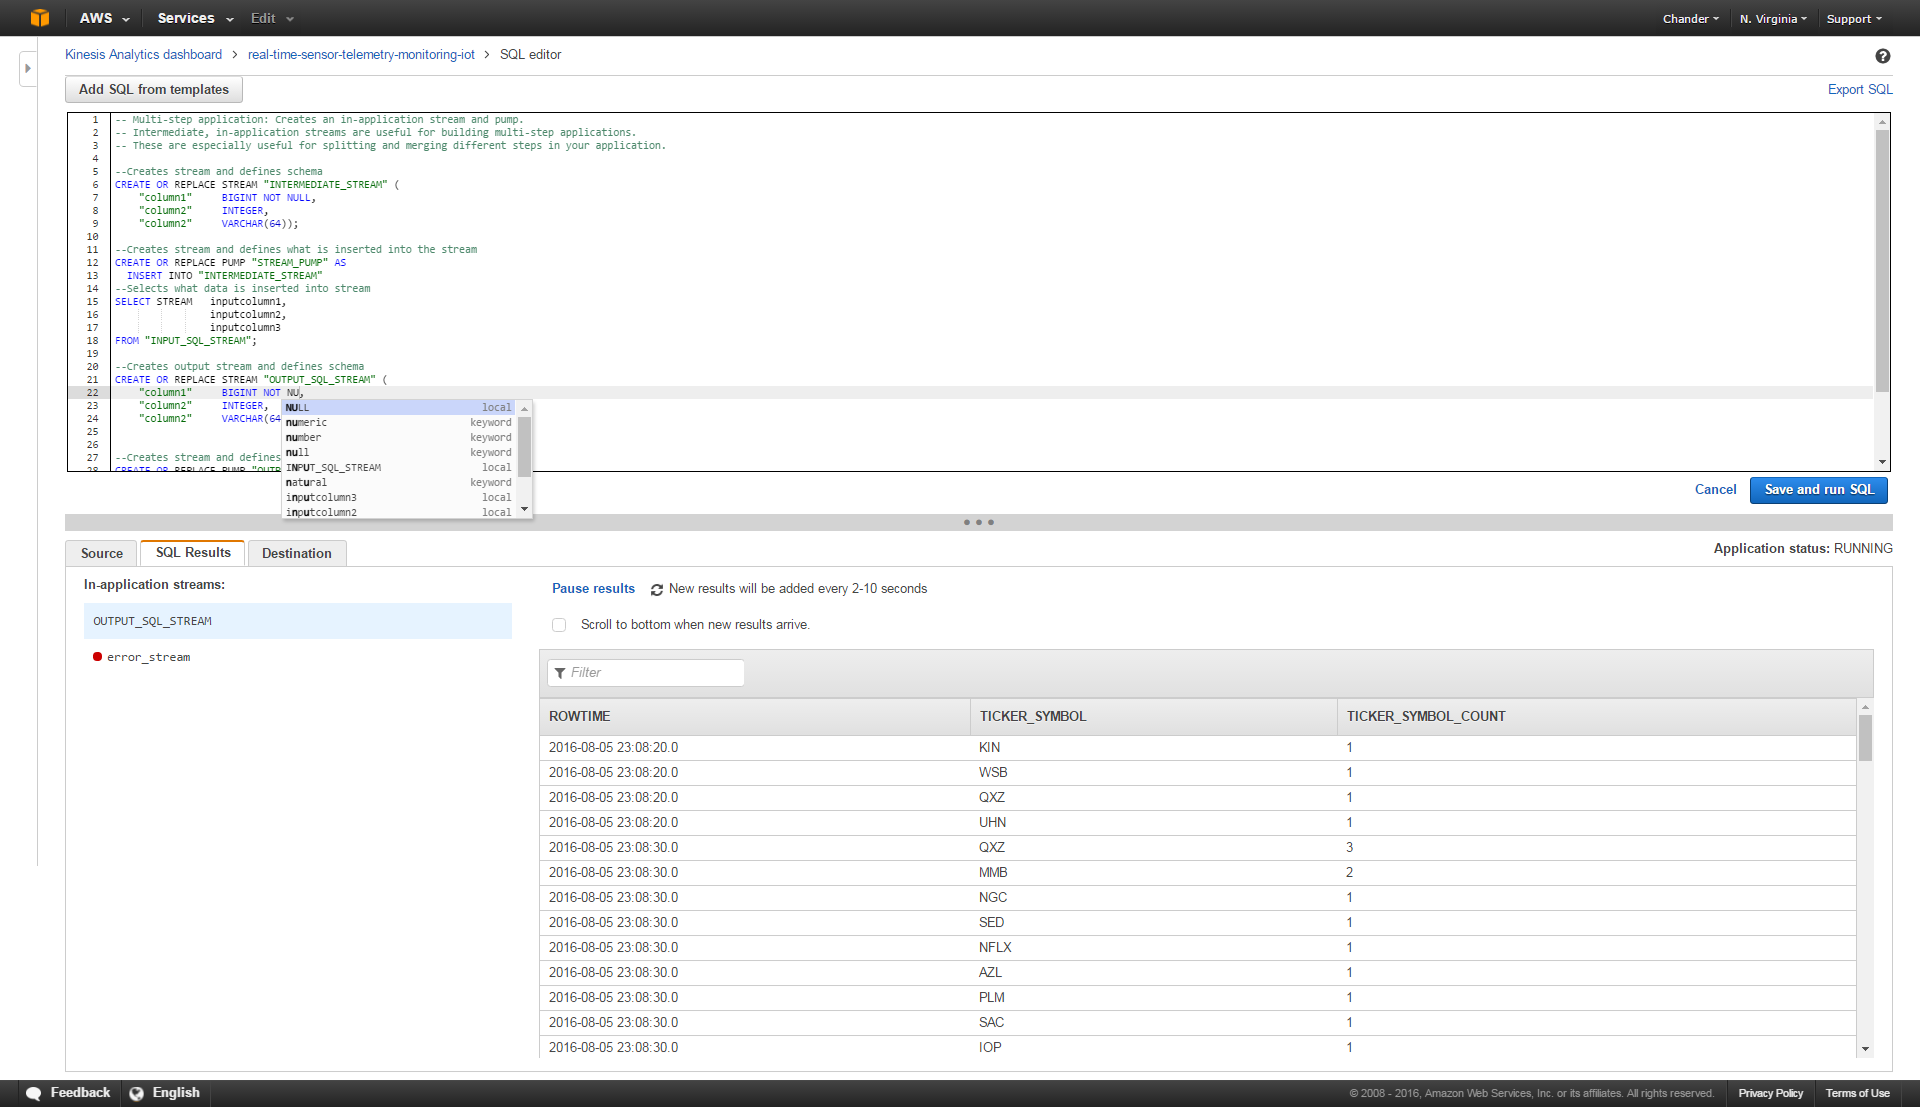 kinesis-analytics-console-sql-editor-with-dropdown-screenshot-2